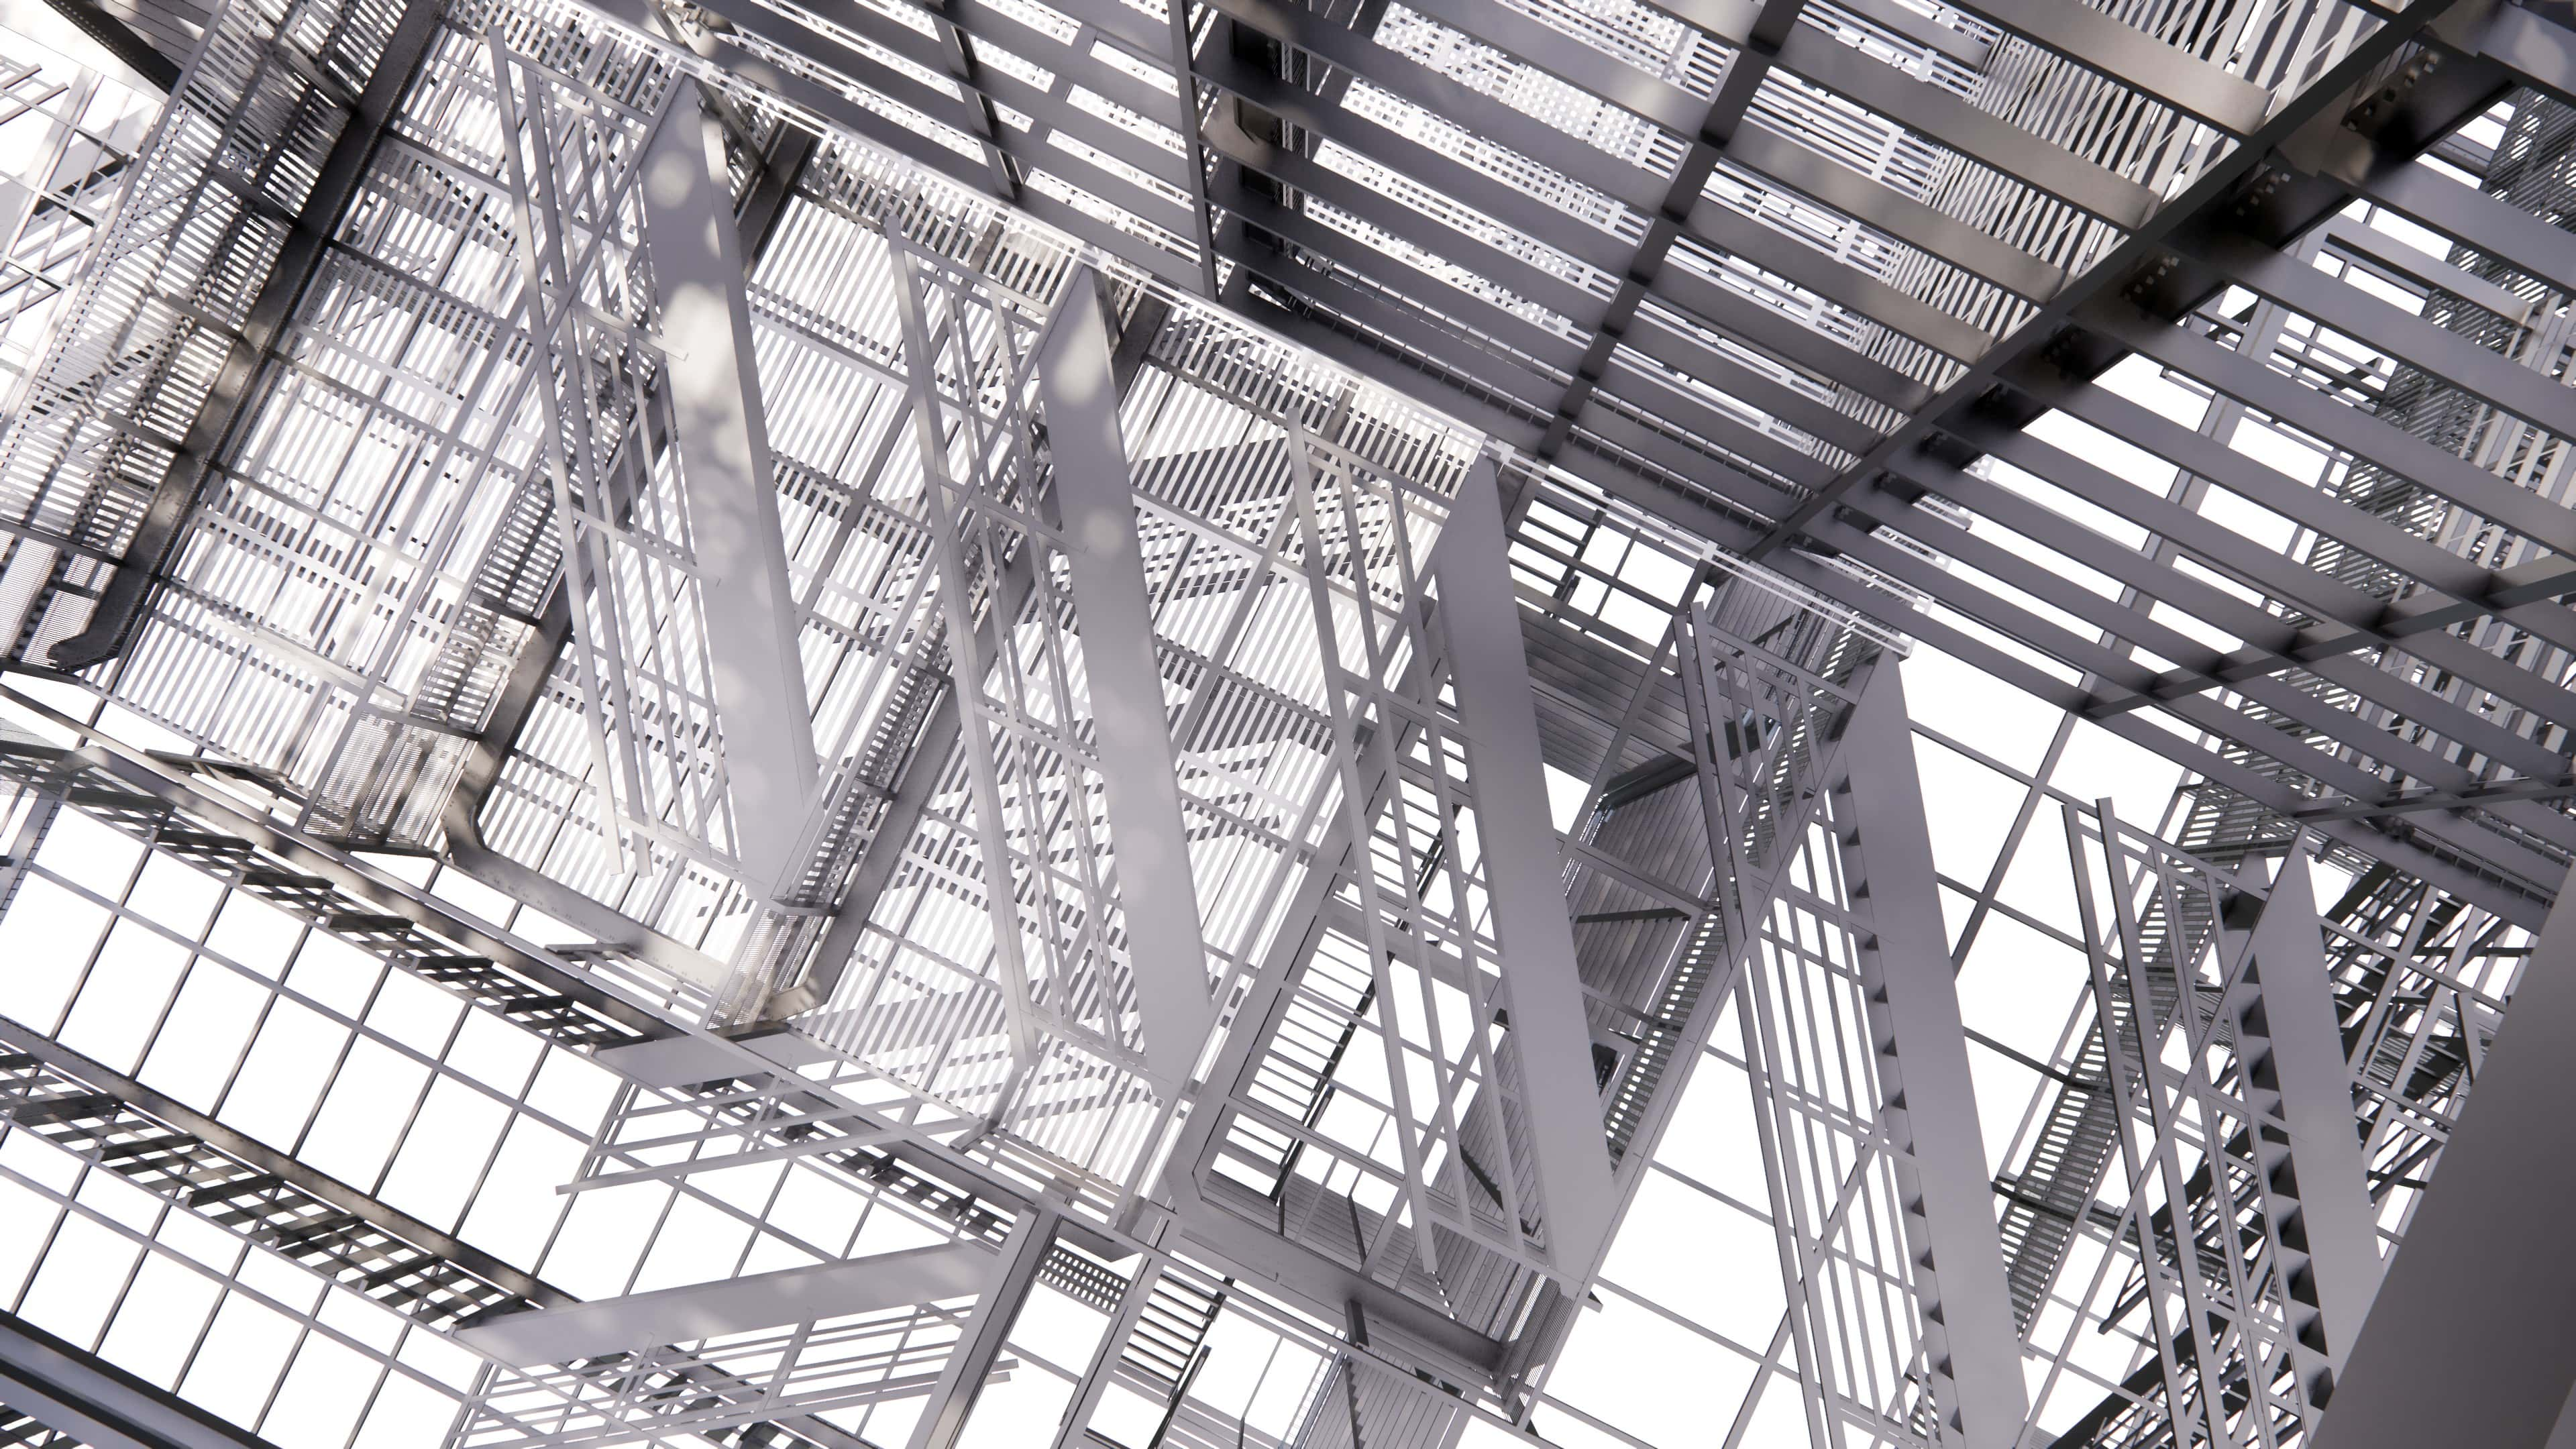 13. RENDER CLOSE UP_STRUCTURE